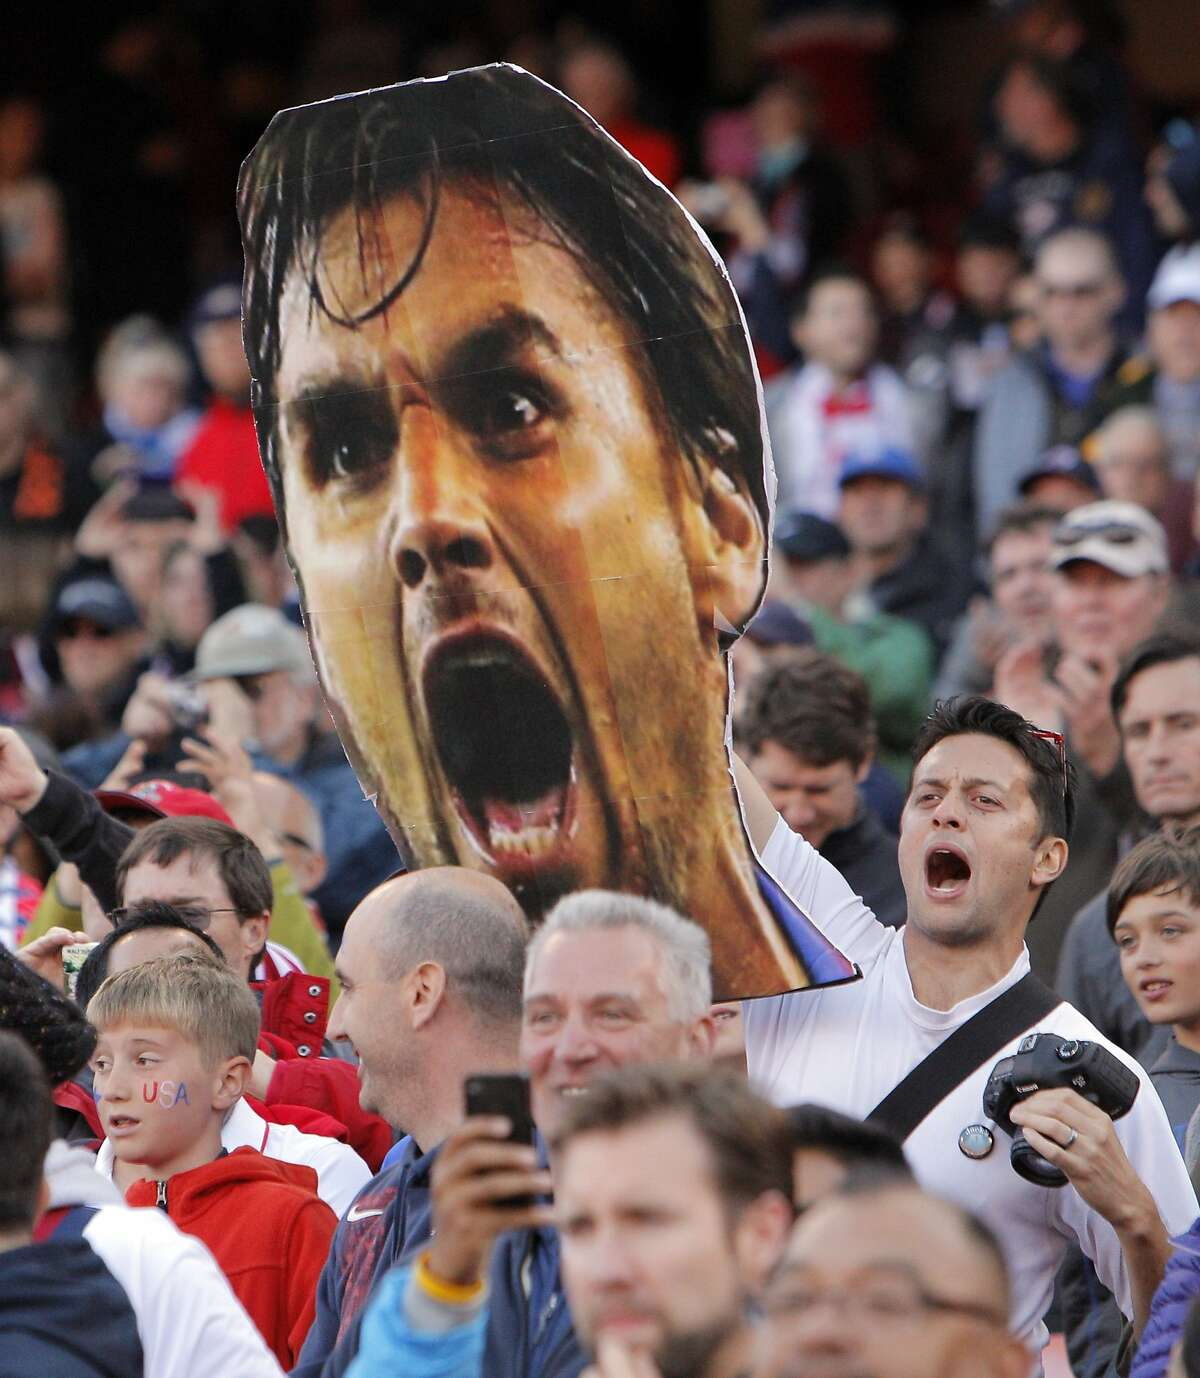 Friends of Chris Wondolowski hold up a giant picture of his head in the stands during the introductions of both teams. The U.S. Men's National Soccer Team played the Azerbaijan Men's National Team at Candlestick Park in an international friendly match on Tuesday, May 27, 2014, in San Francisco, Calif.